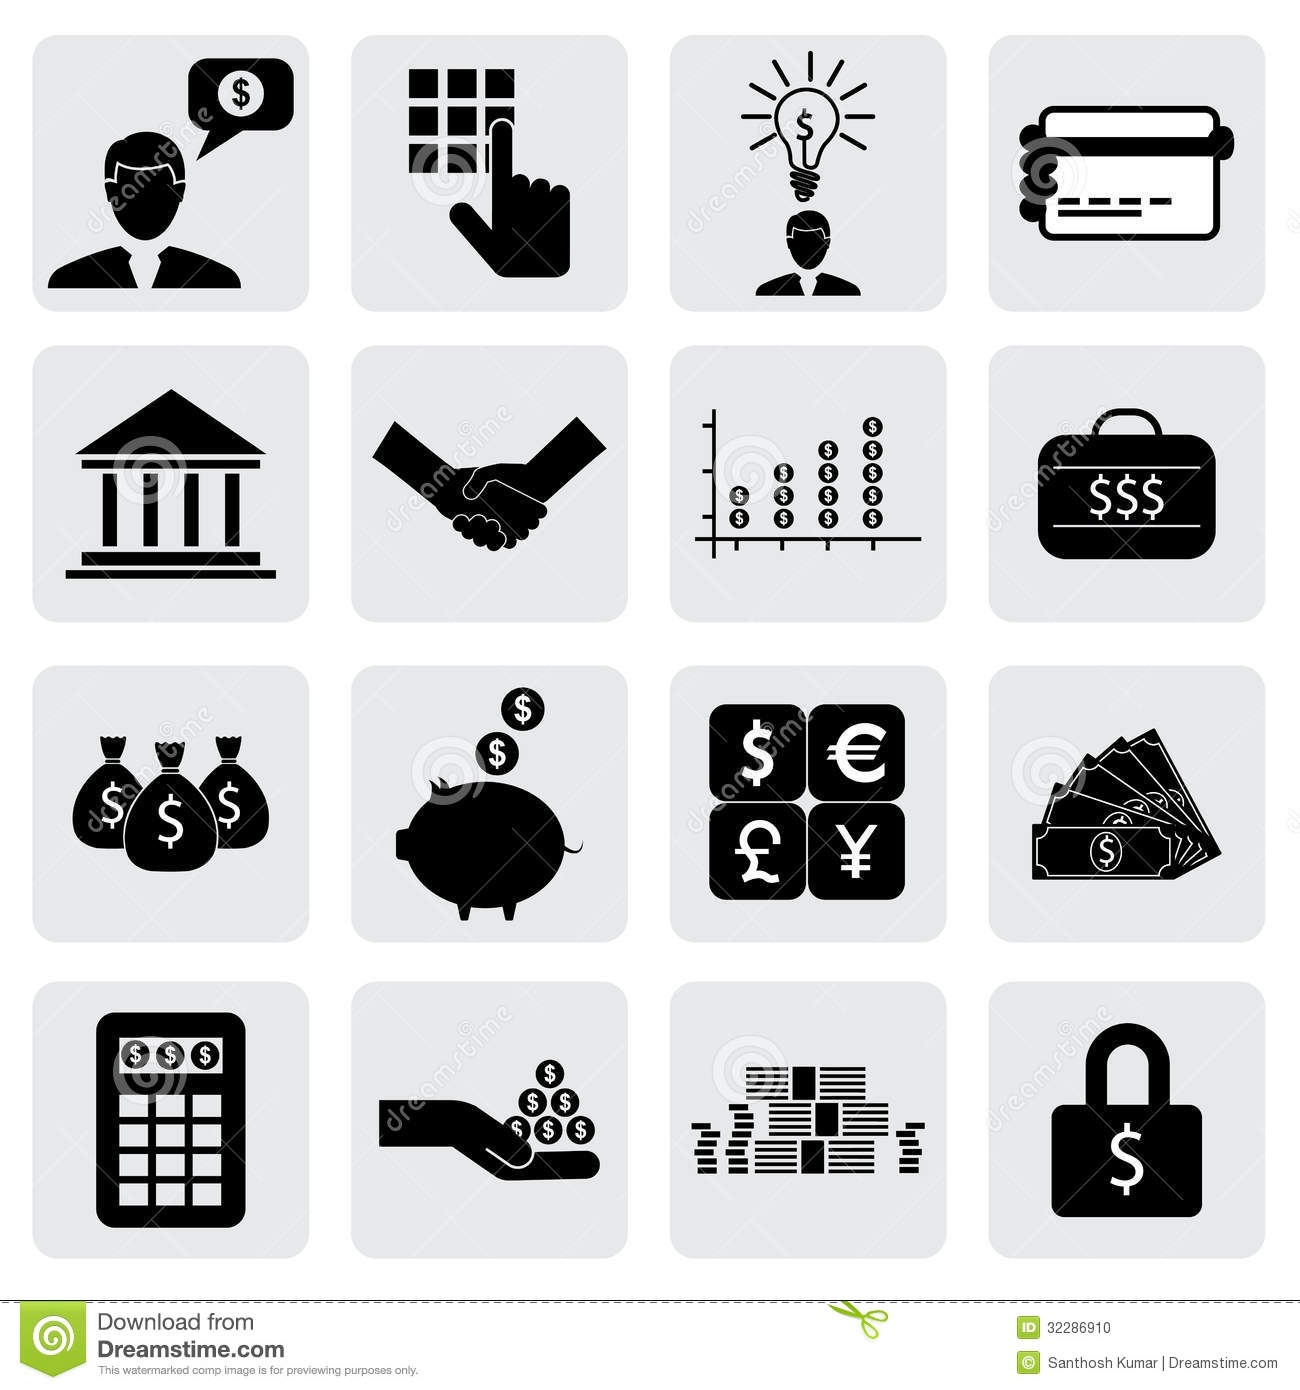 Bank Finance Icons Signs Related To Money Wealth Stock Vector Illustration Of Count Growth 32286910